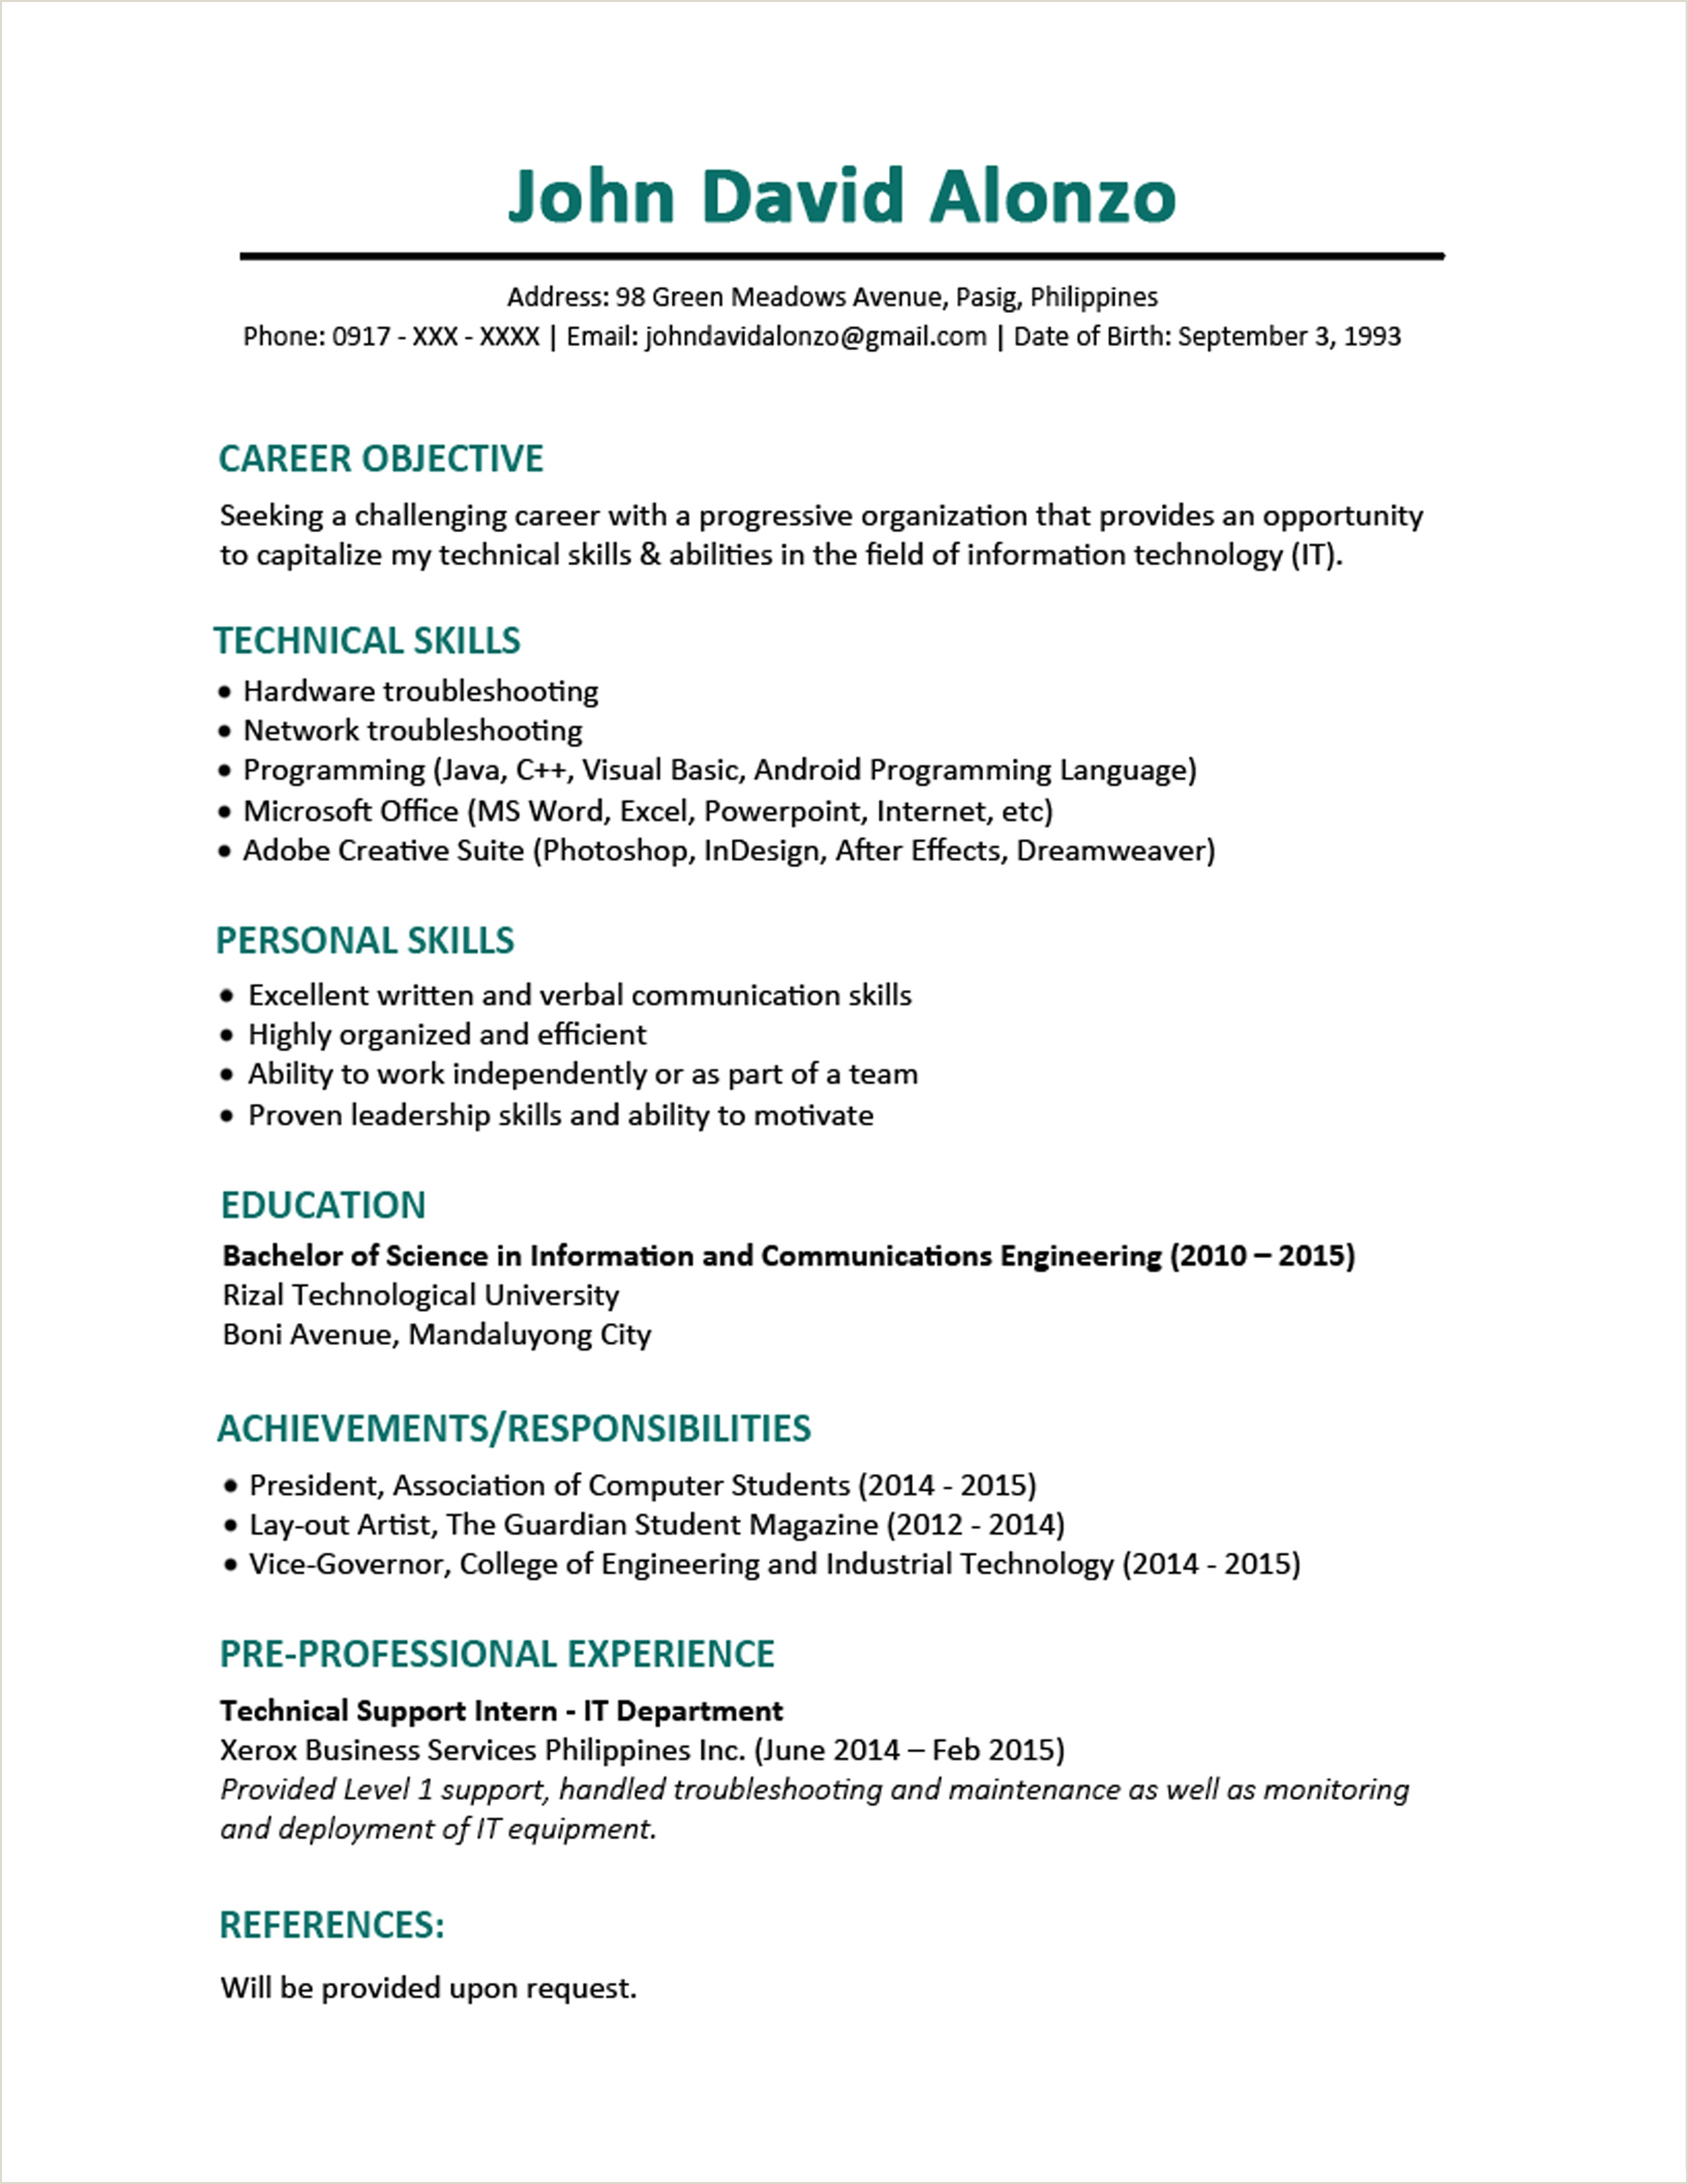 Freshers Resume format Download In Ms Word with Photo 3 Page Resume format for Freshers Resume Templates